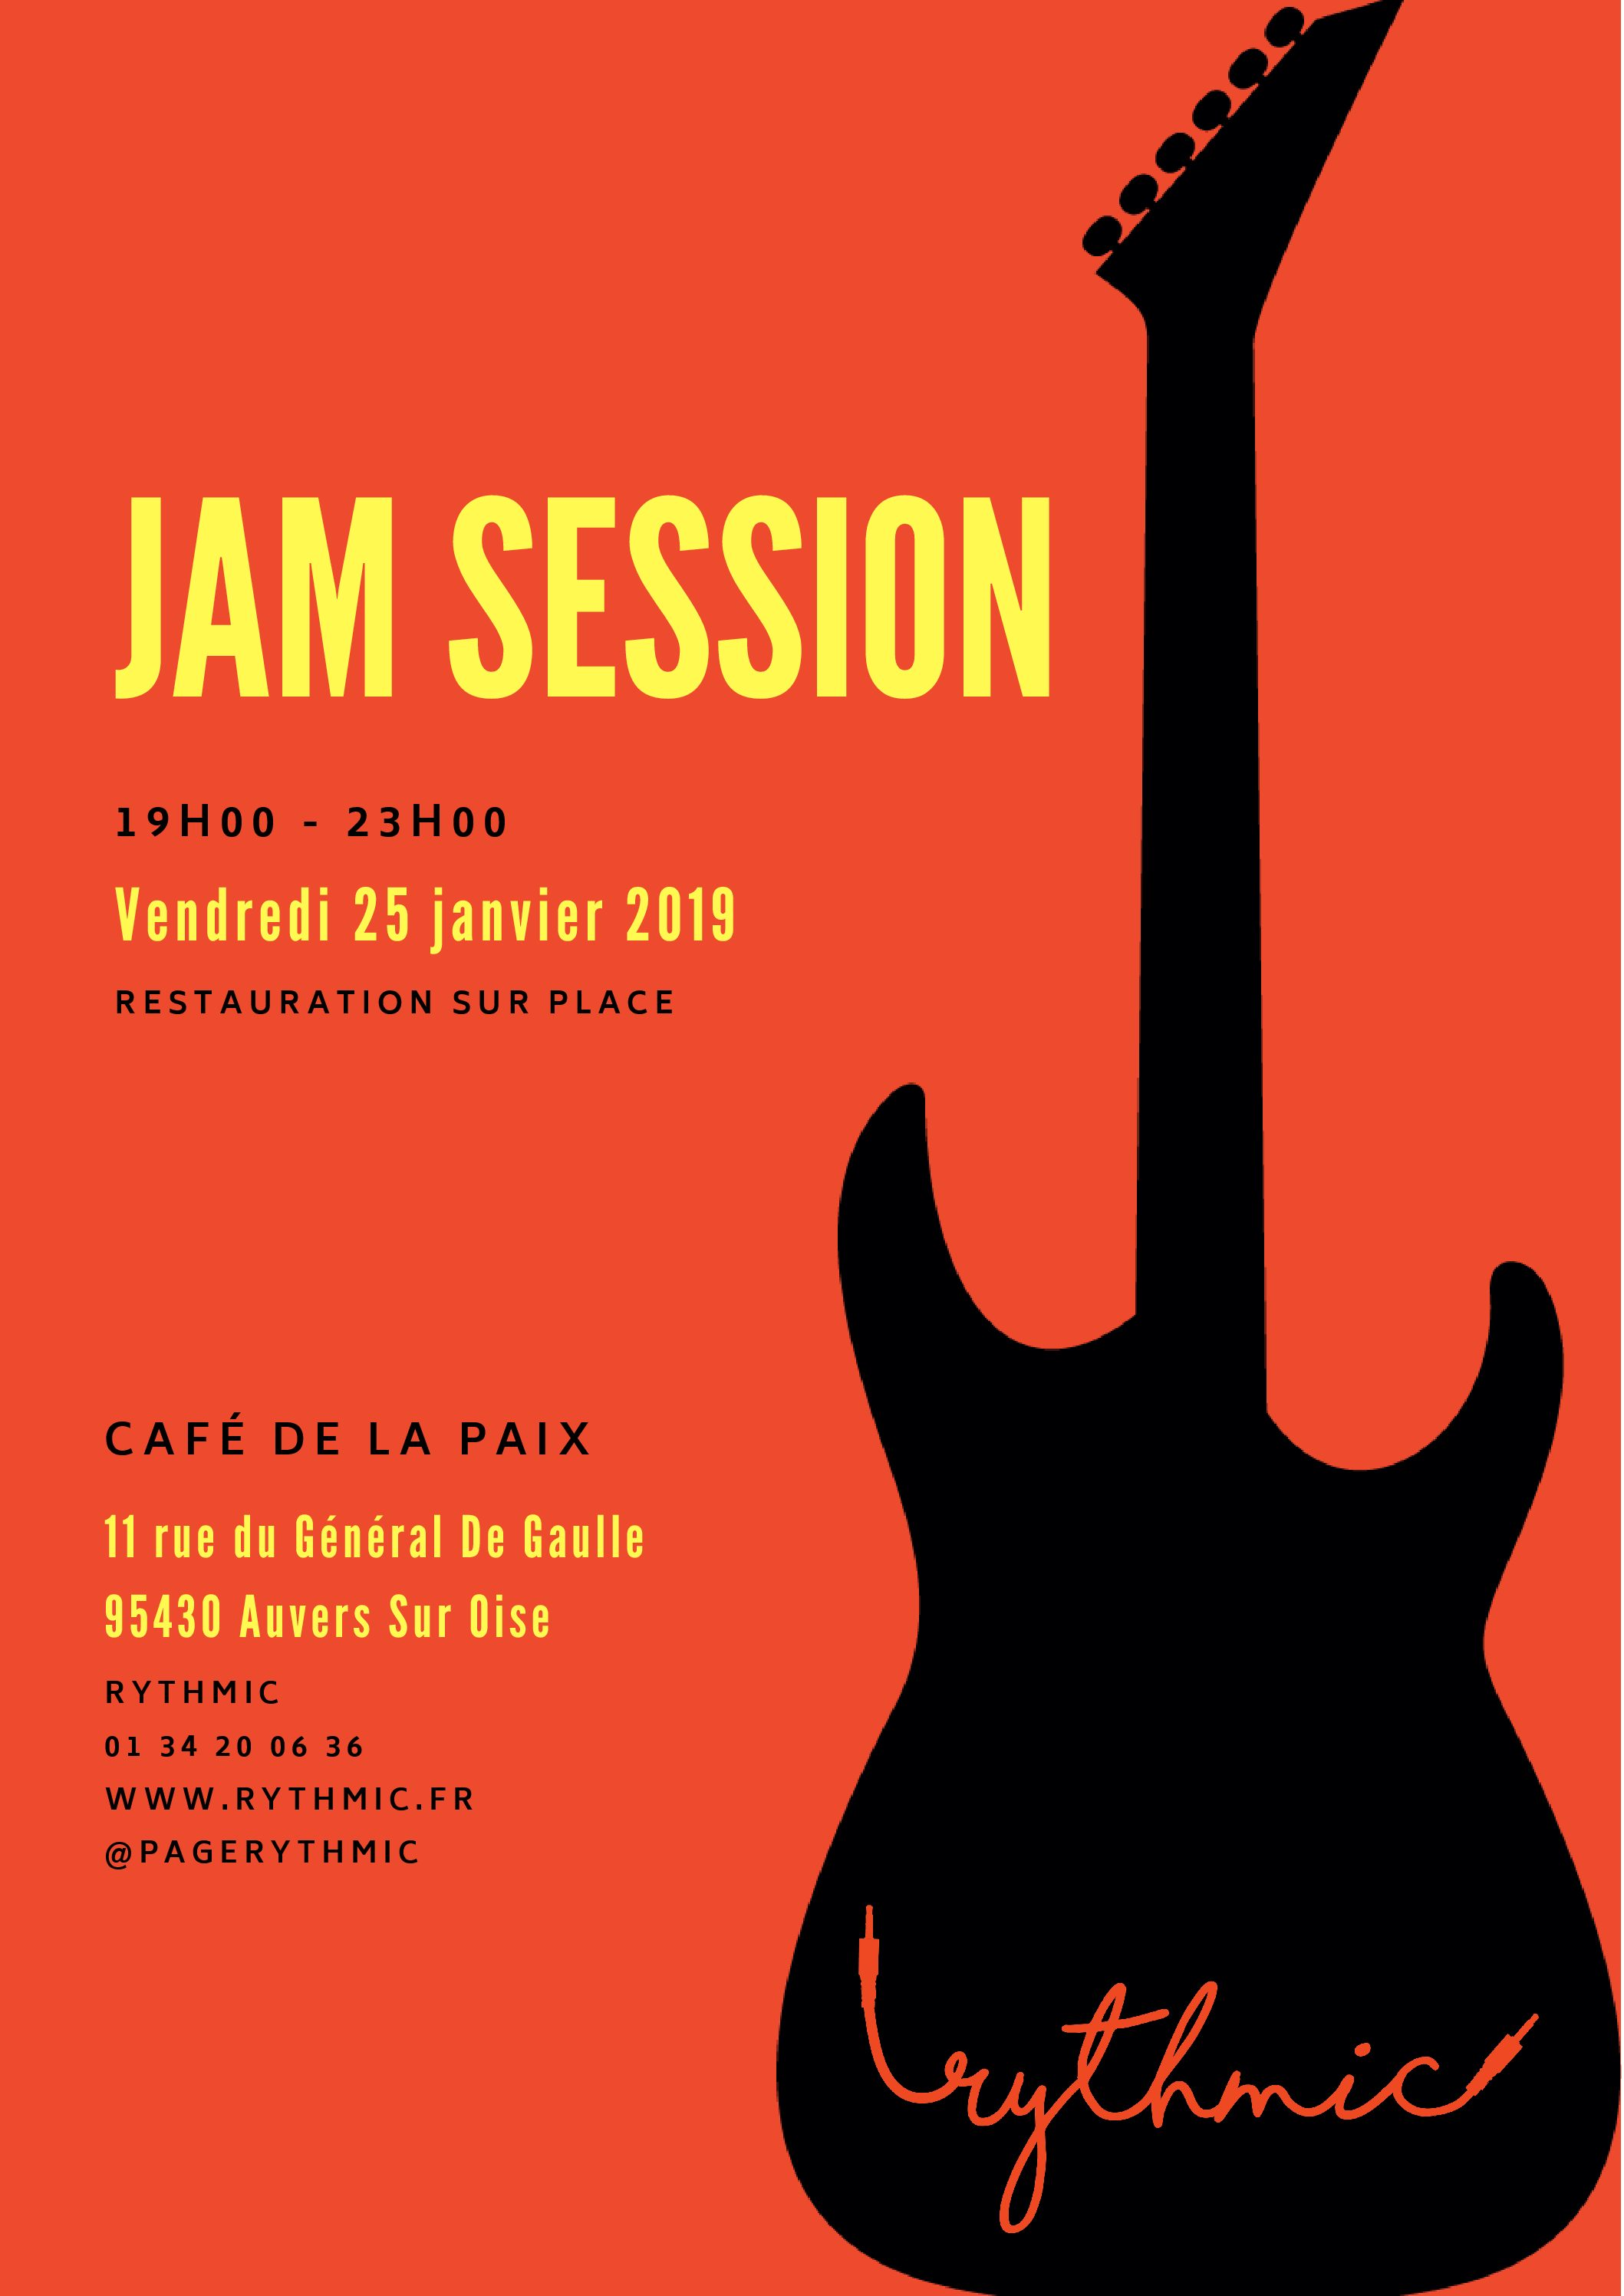 Jam Session 25 janvier 2019